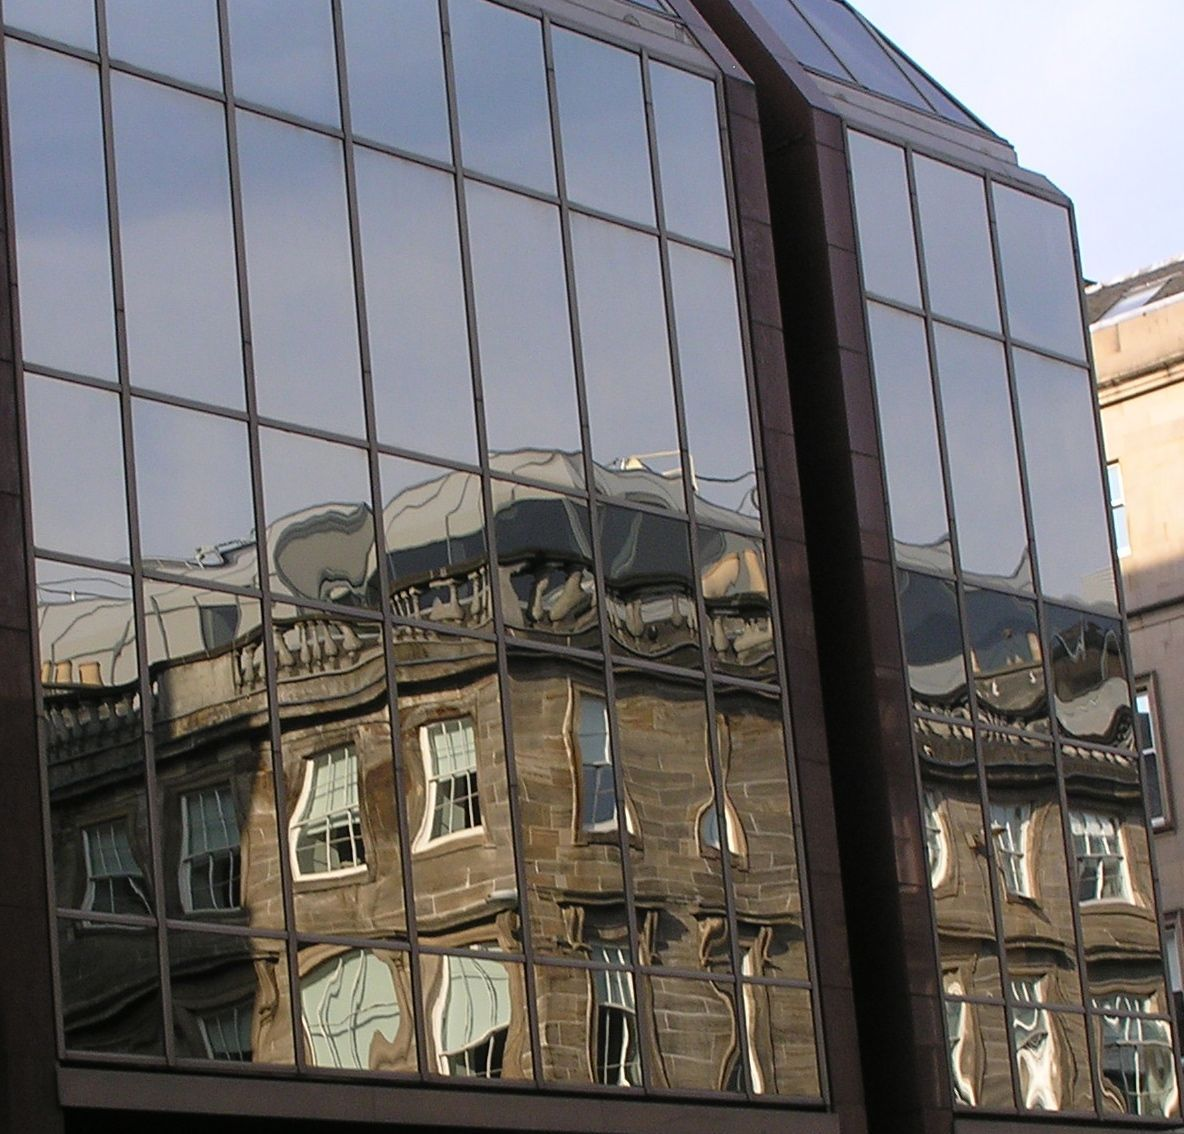 Reflections of Glasgow